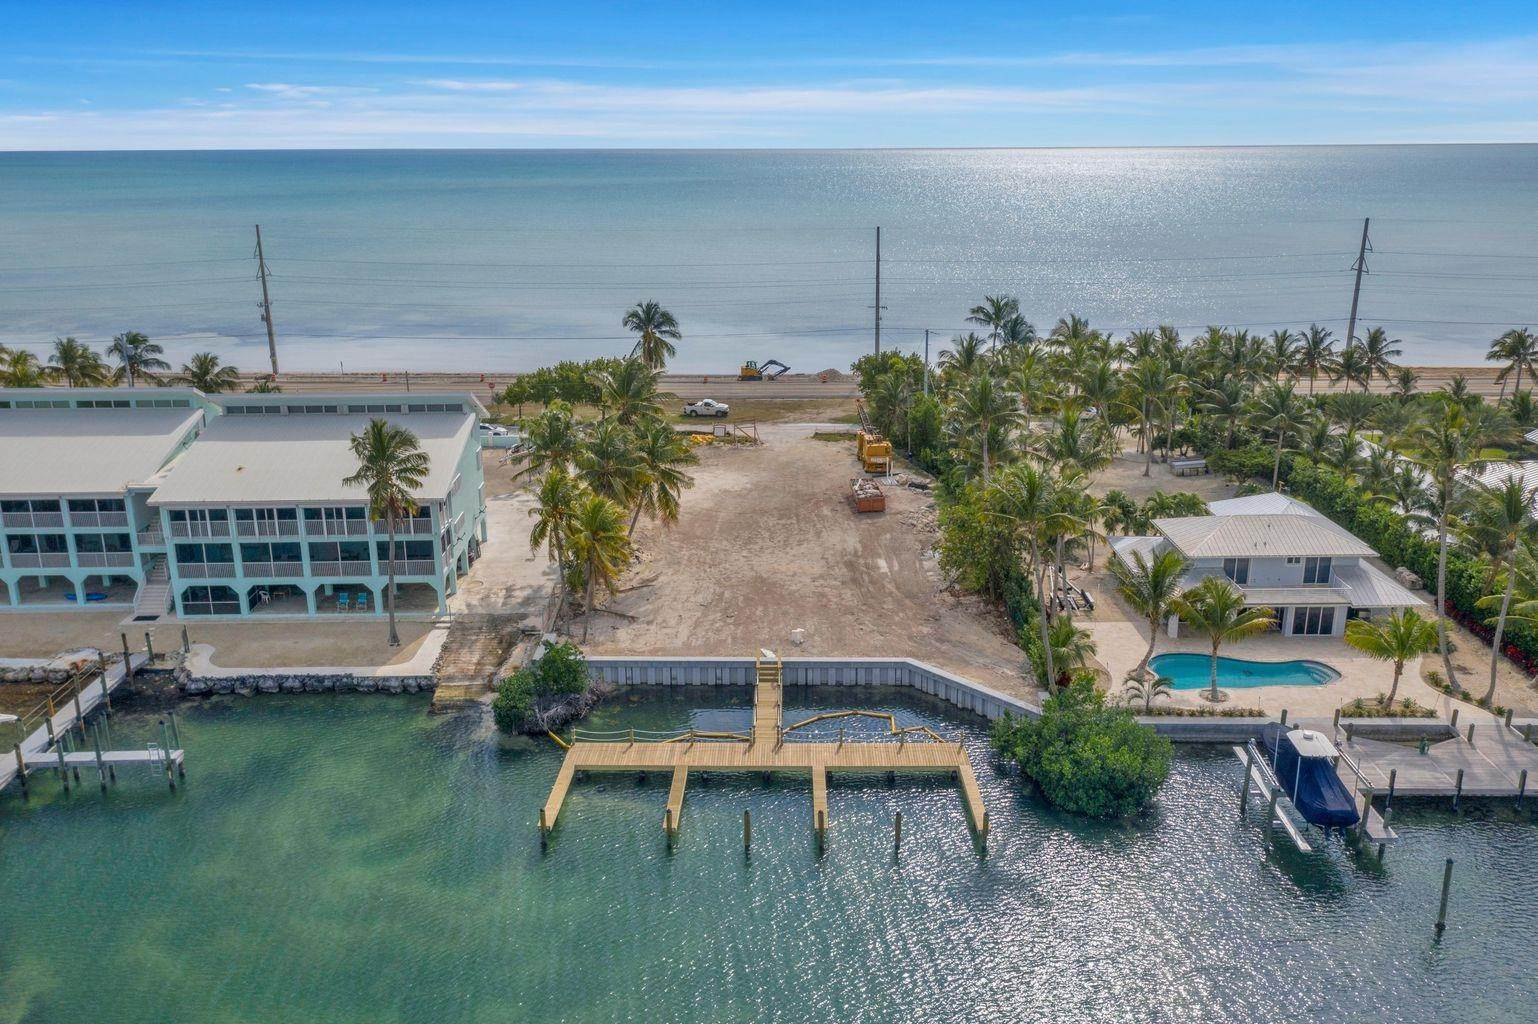 Land/Lot for Sale at 74960 Overseas Hwy Lower Matecumbe Key, Florida,33036 United States